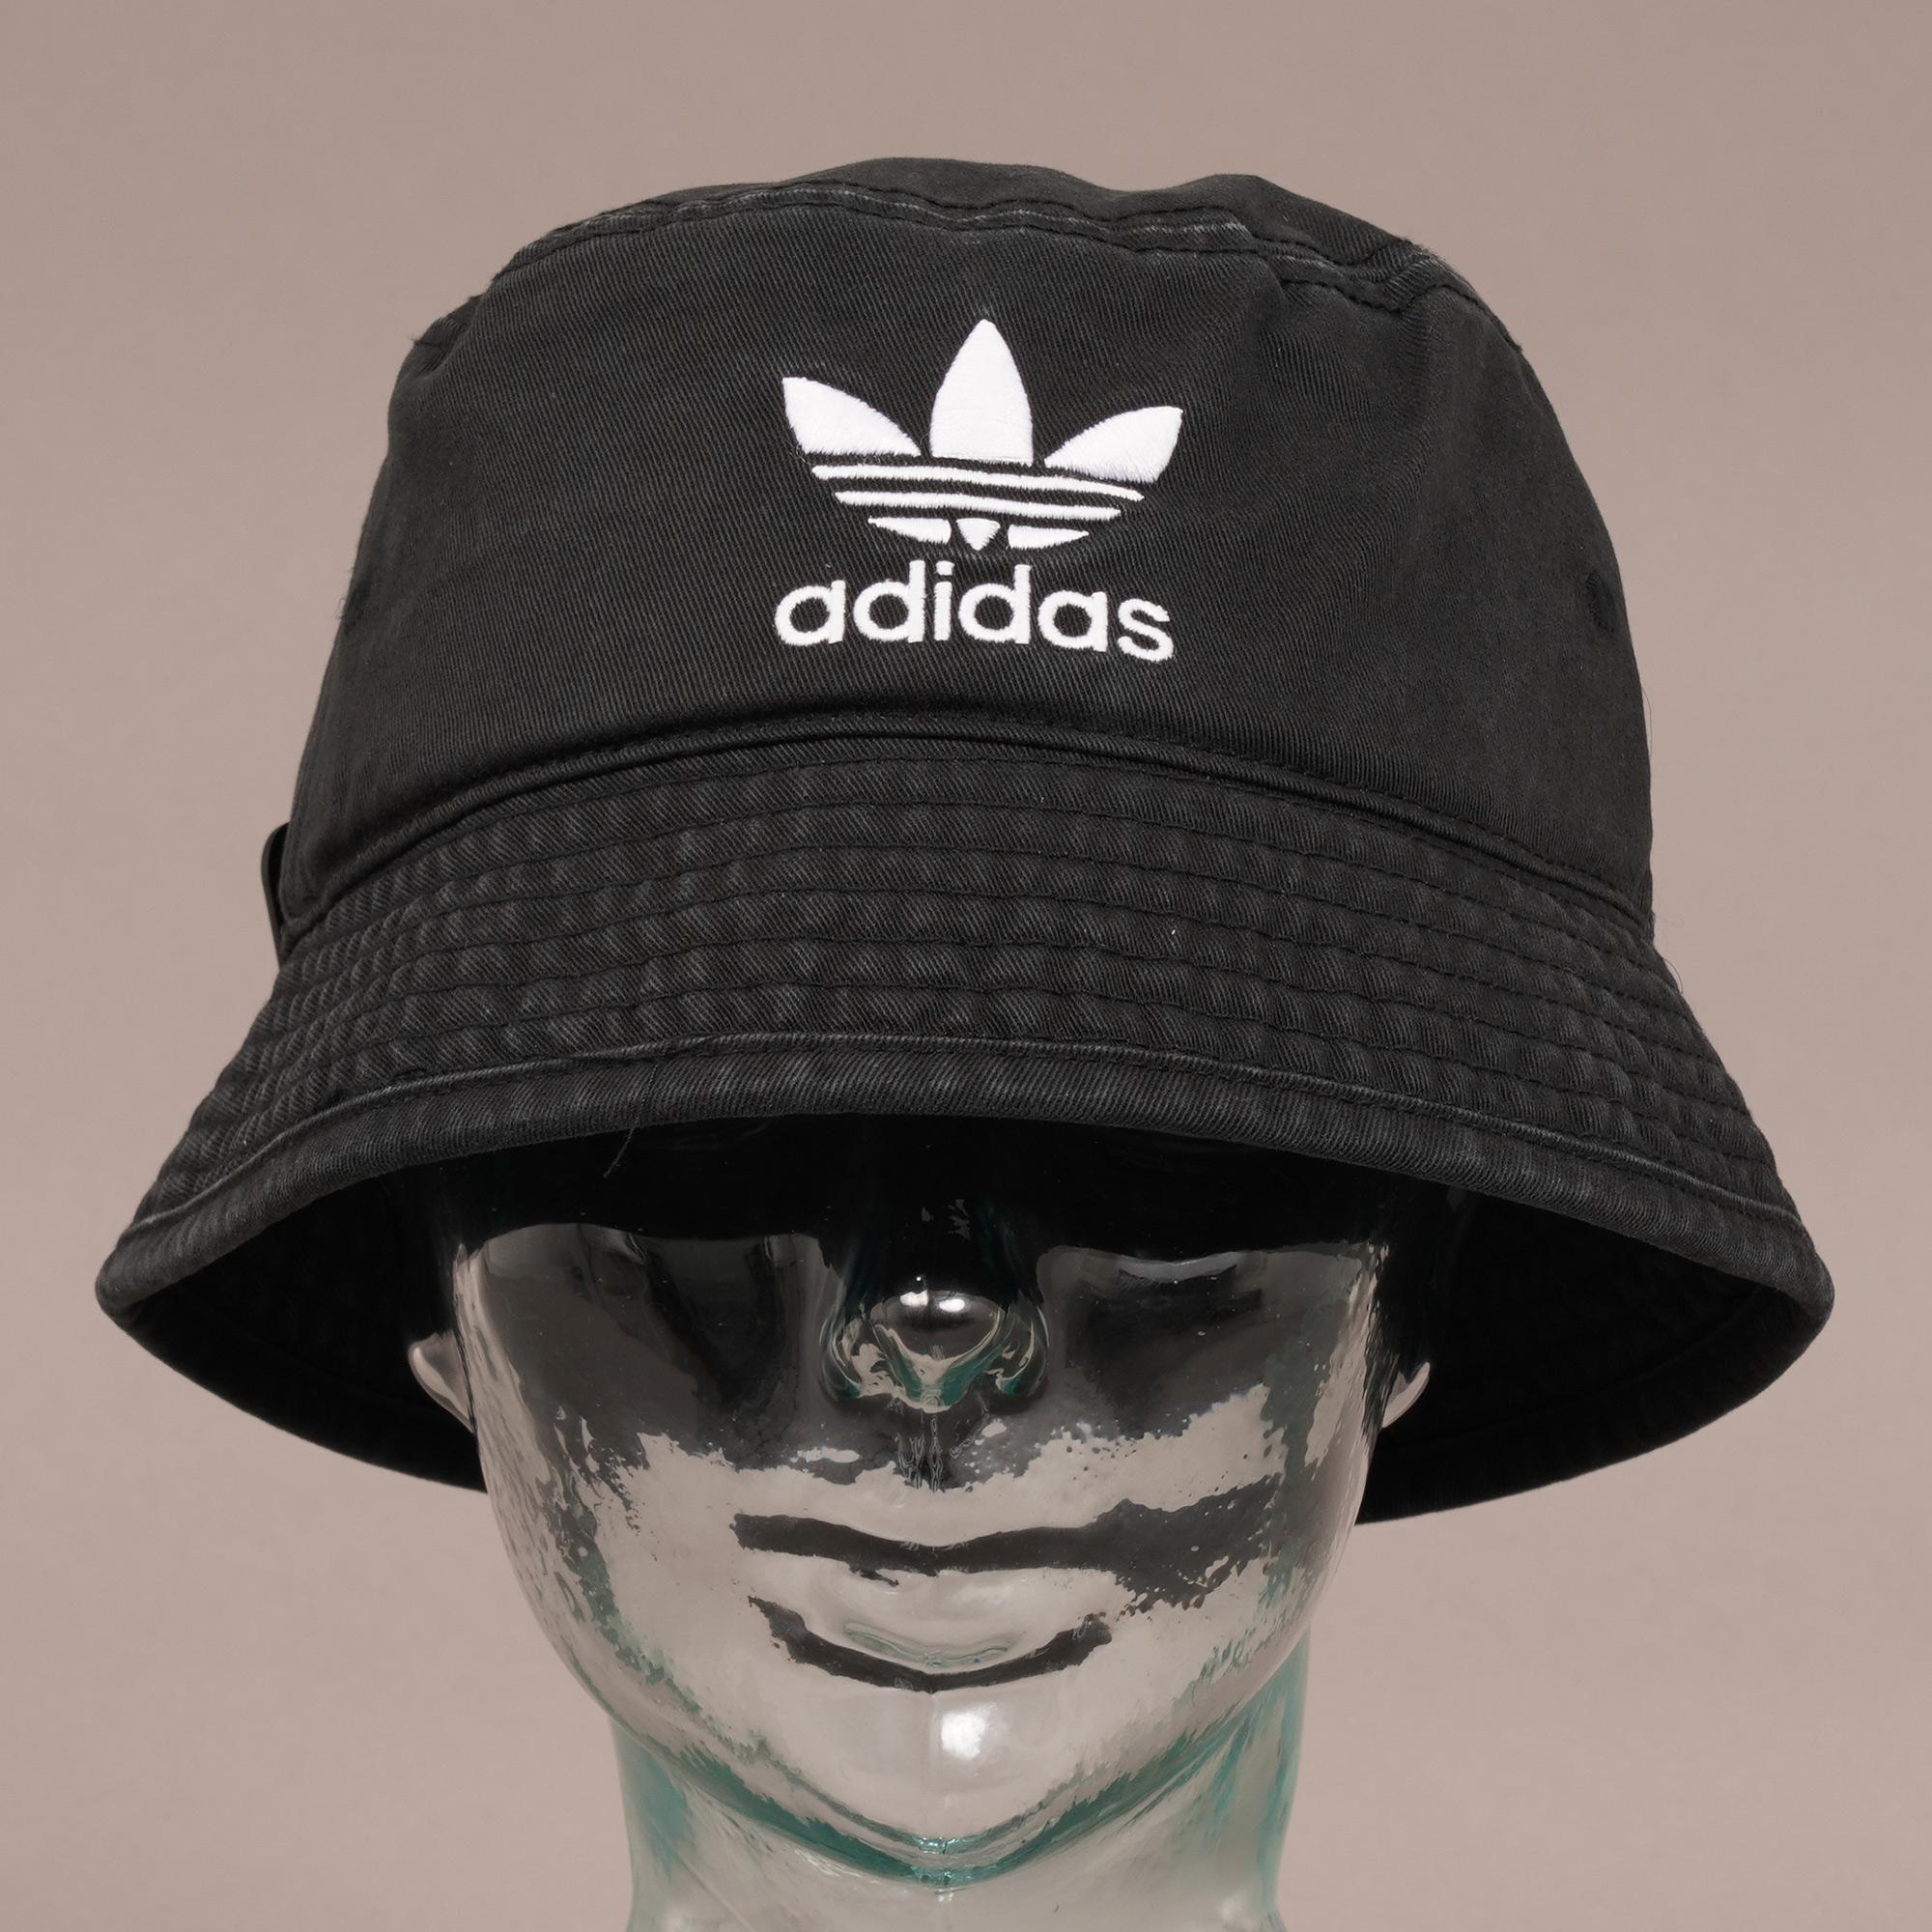 52459a71145 Adidas Originals - Trefoil Bucket Hat - Black for Men - Lyst. View  fullscreen